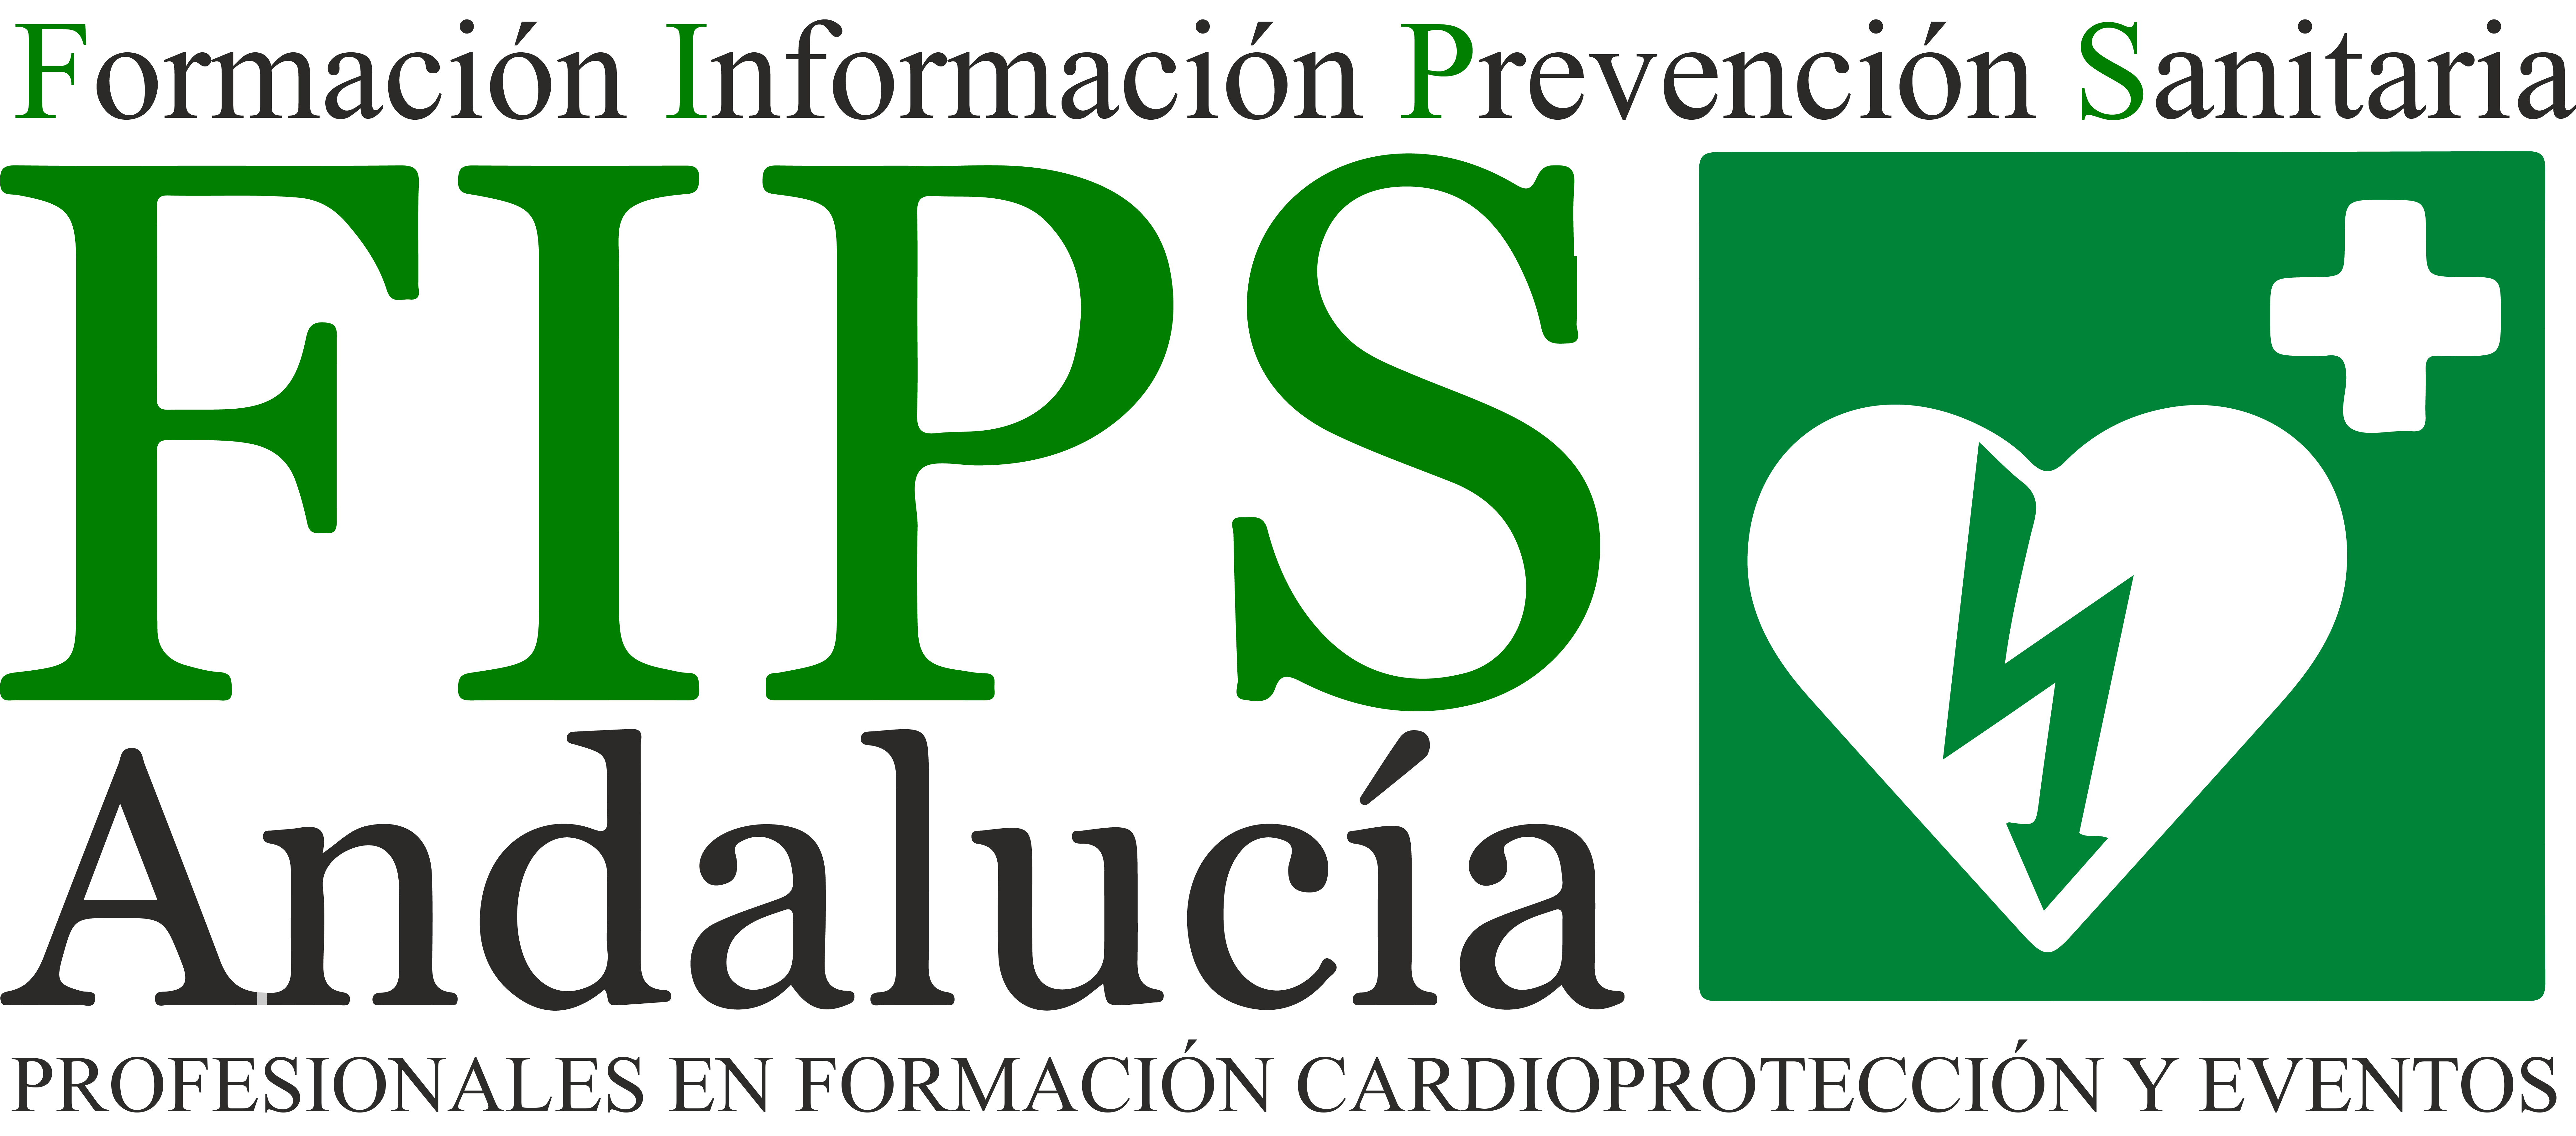 FIPS Andalucía